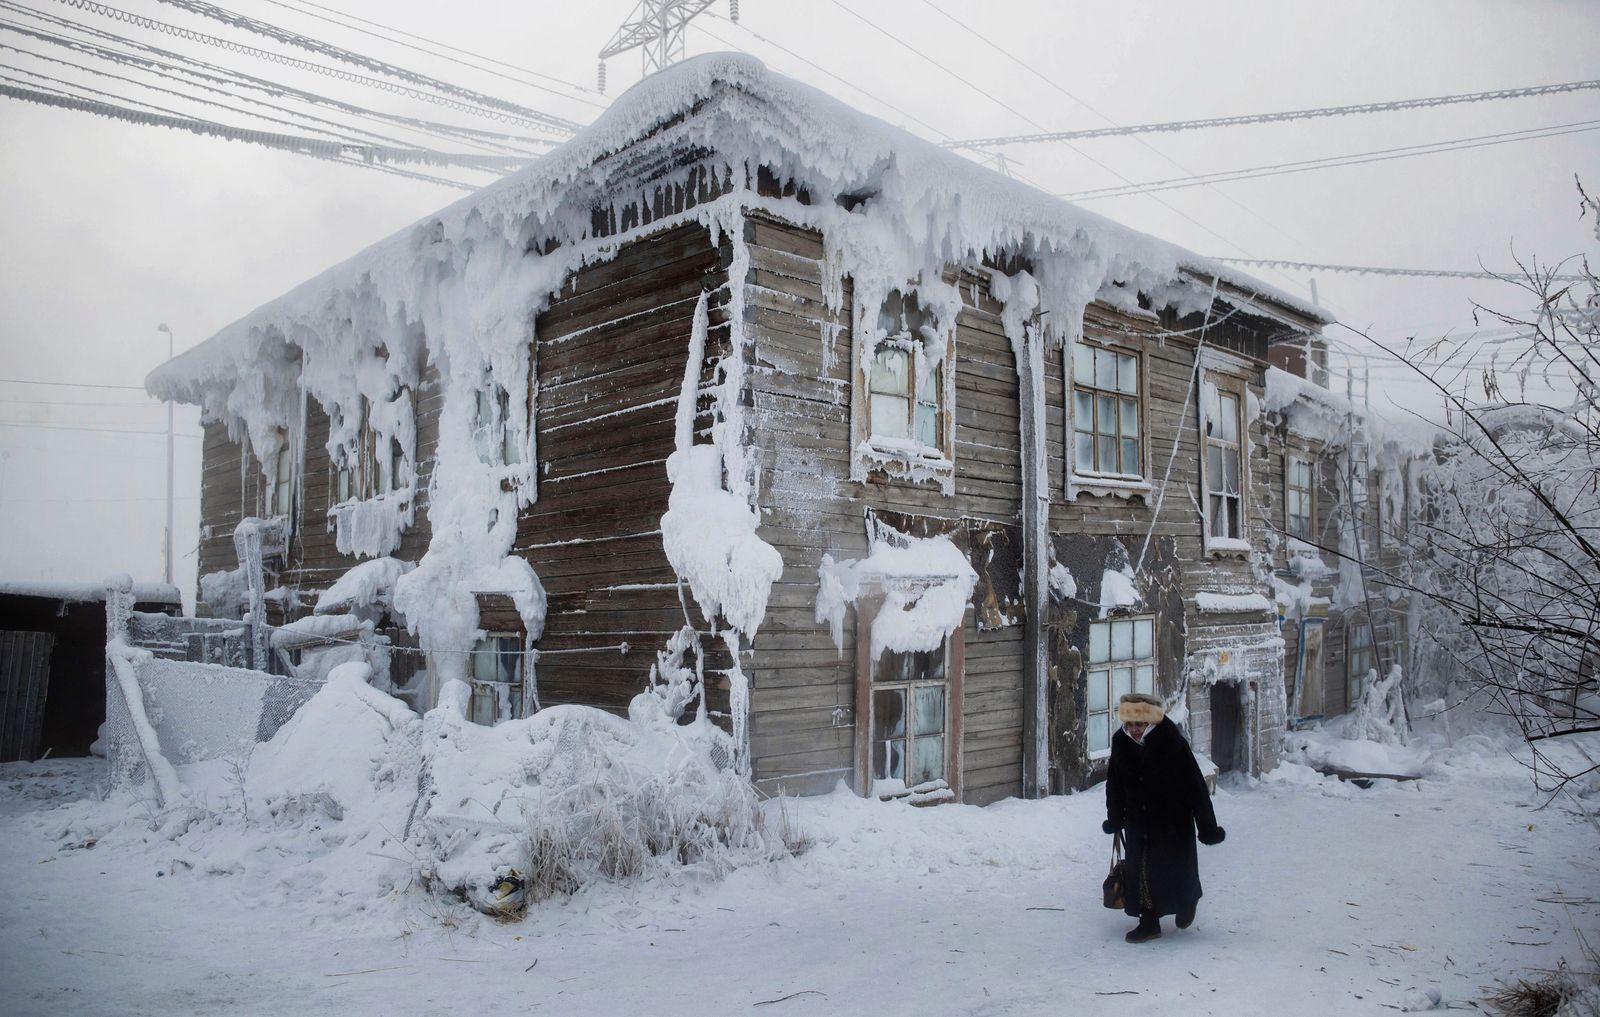 Yakutsk, which is considered to be the coldest city in the world, Russia - Jan 2014 n